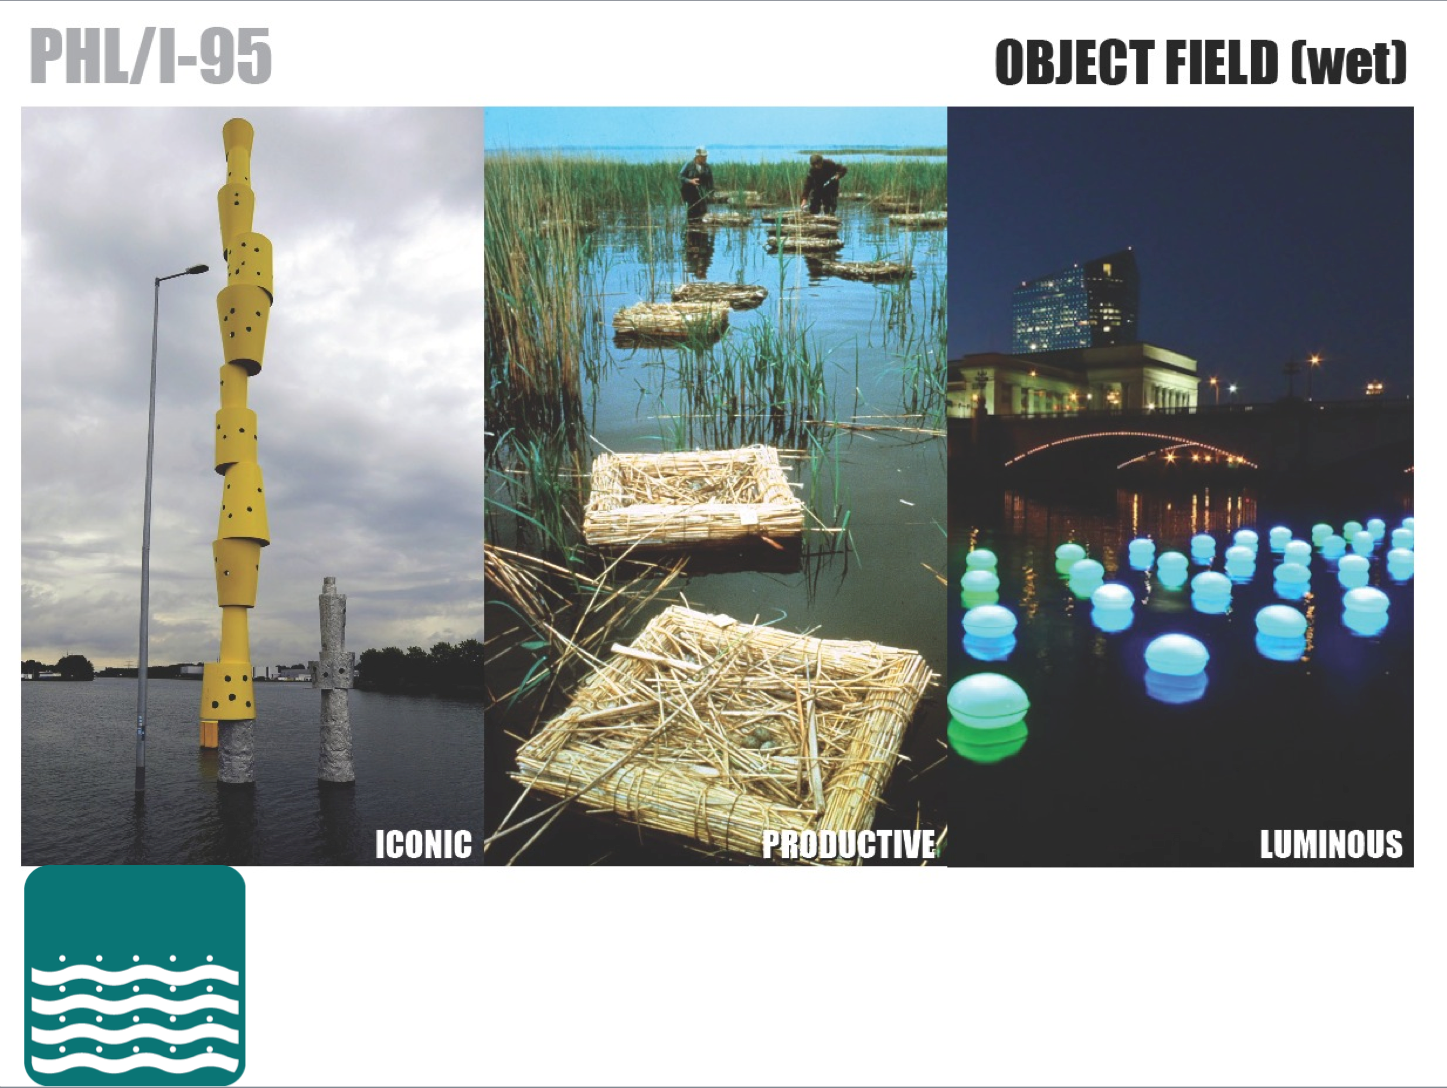 Civic Landscape PHL / I-95 - Object Field Wet | courtesy of PHS